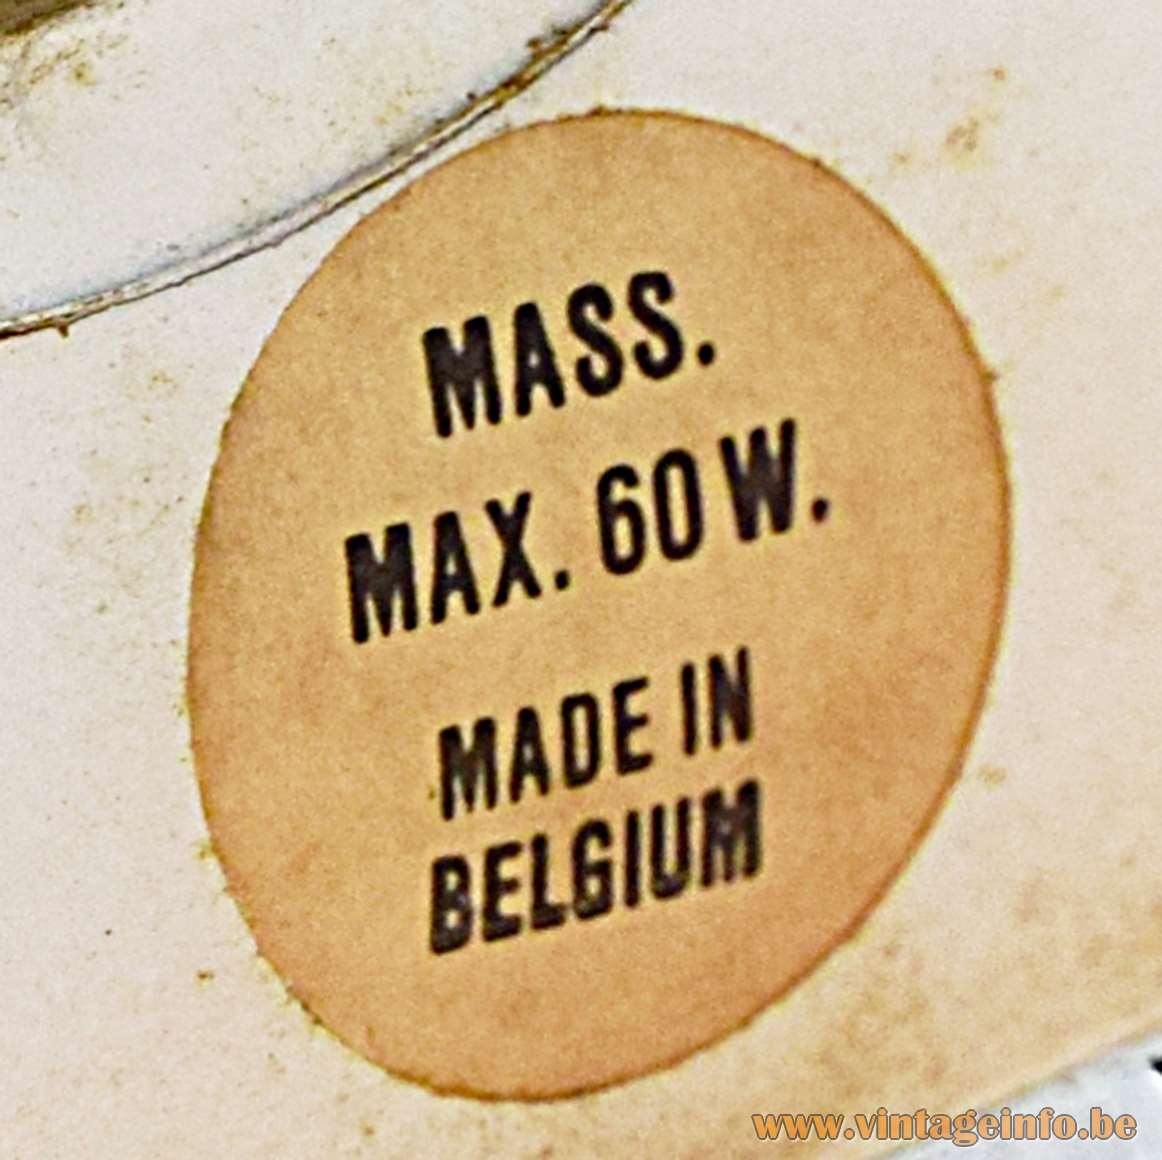 Massive Lighting 1970s Label Mass. Max. 60 W. Made in Belgium Massimo Maximum